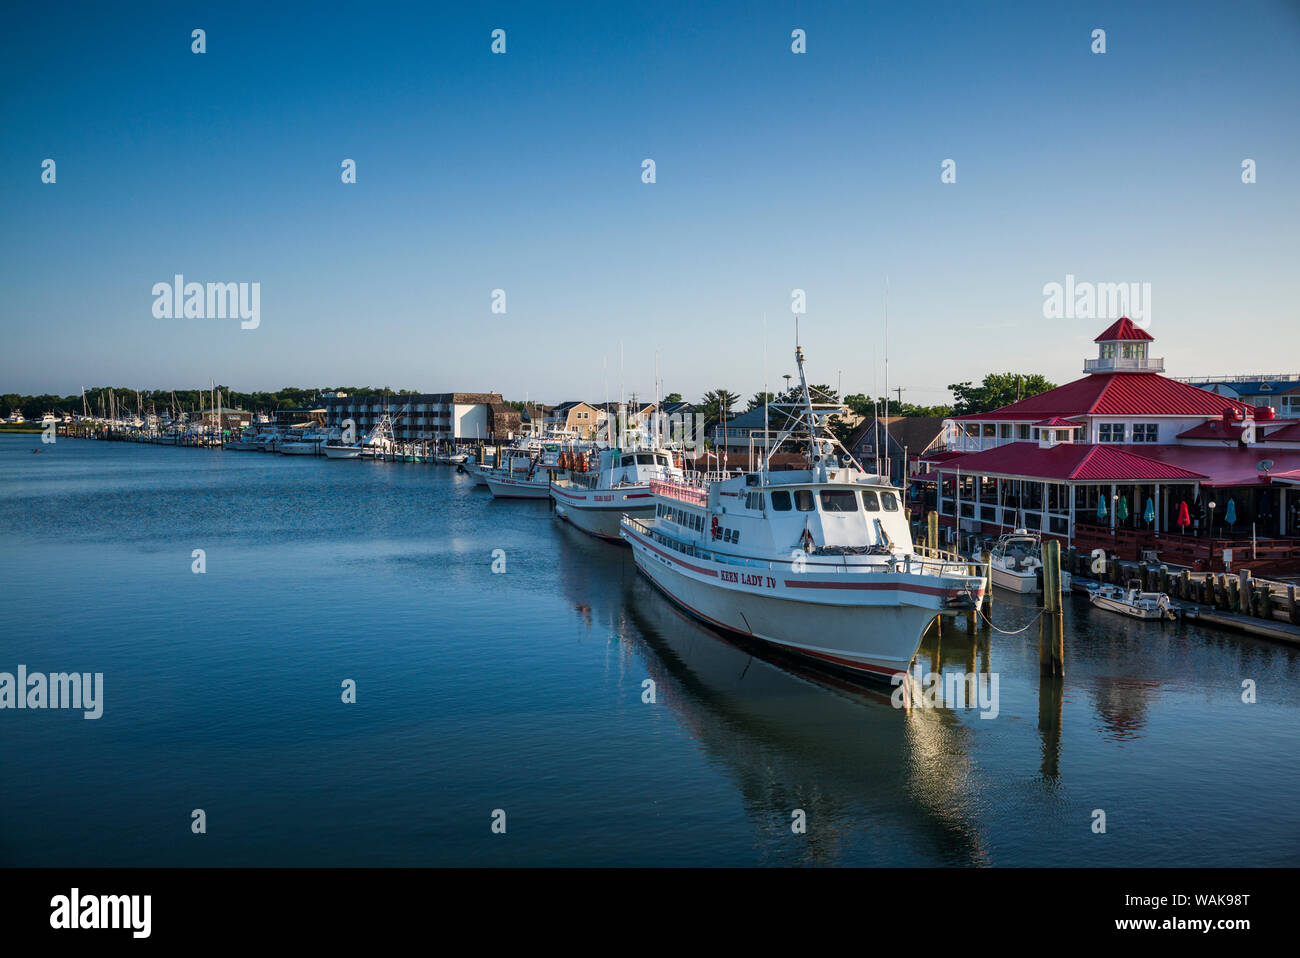 USA, Delaware, Lewes. Waterfront view along the Lewes and Rehoboth Canal Stock Photo